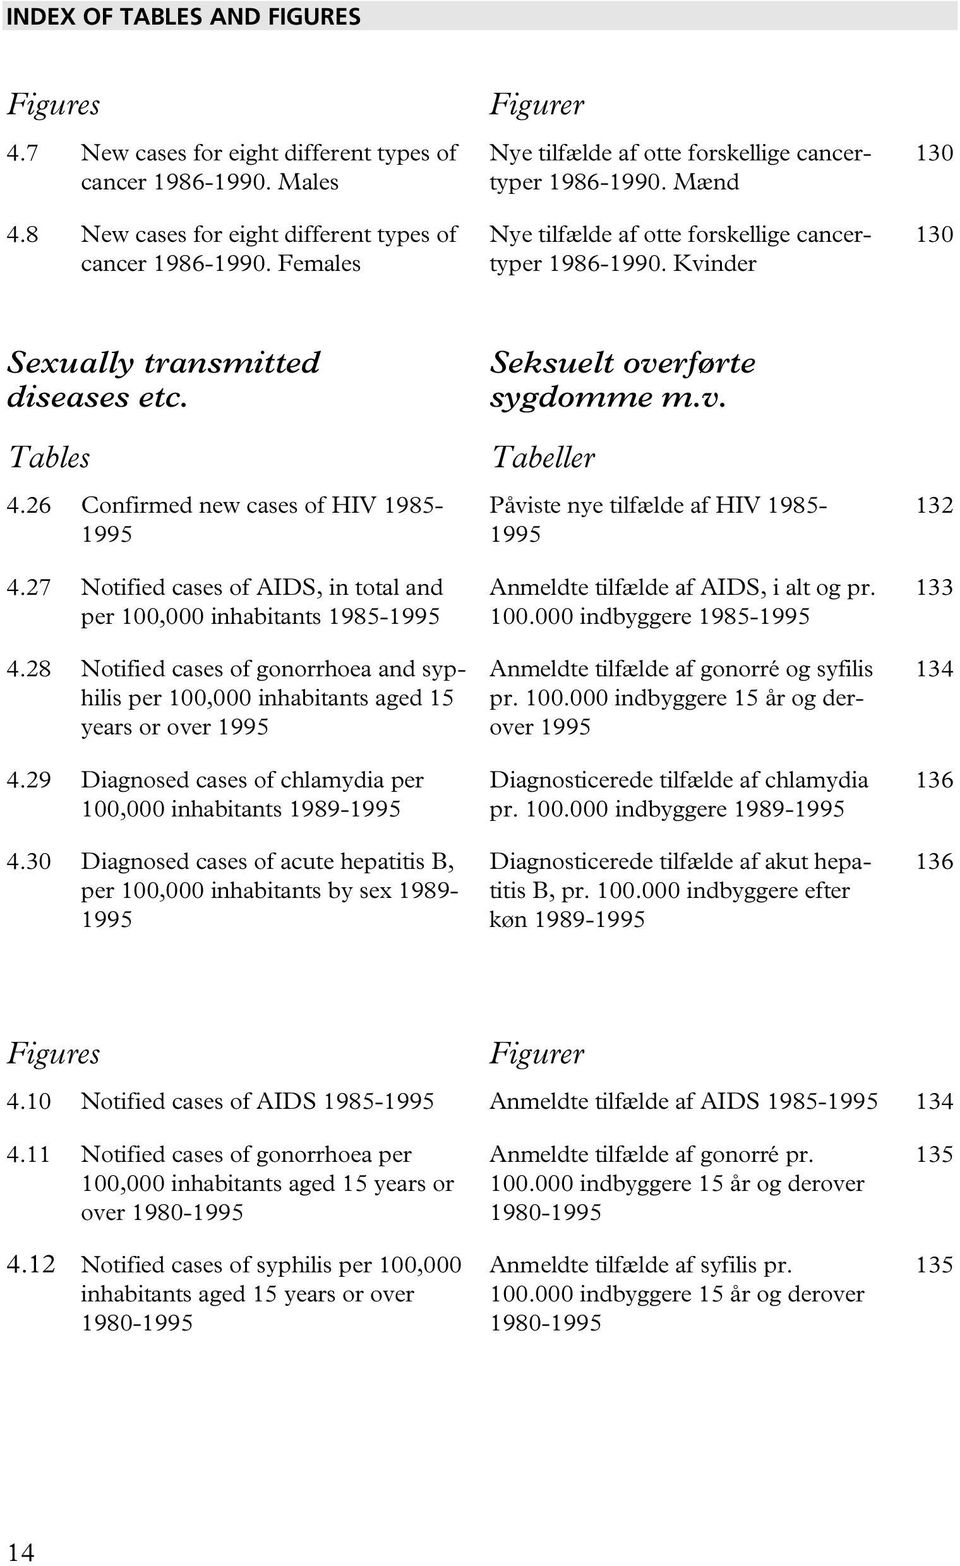 26 Confirmed new cases of HIV 1985-1995 4.27 Notified cases of AIDS, in total and per 100,000 inhabitants 1985-1995 4.